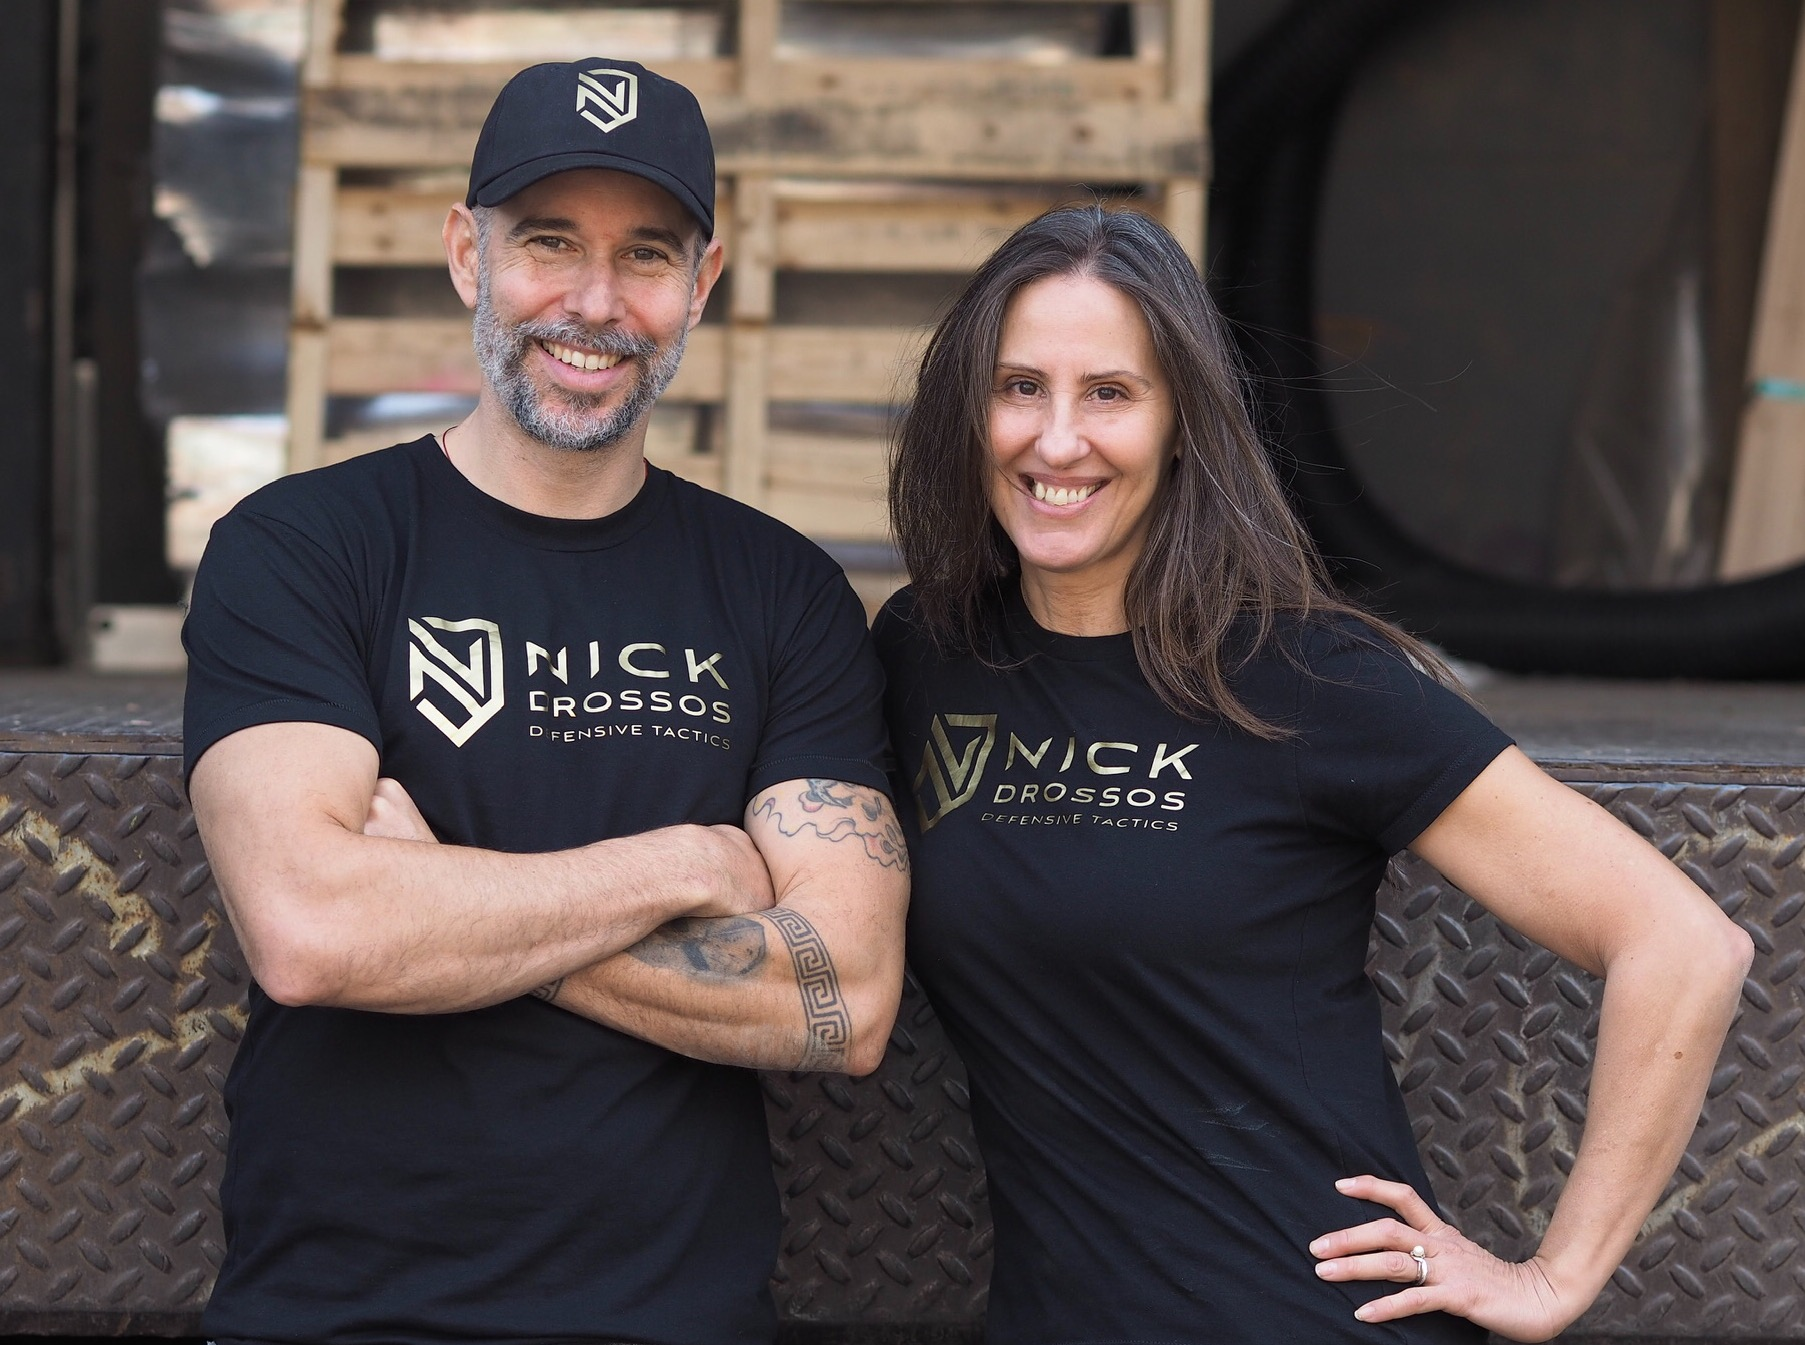 Meet Your Trainers Nick Drossos and Helen Stranzl with over 20 experience in the field of Self Defense